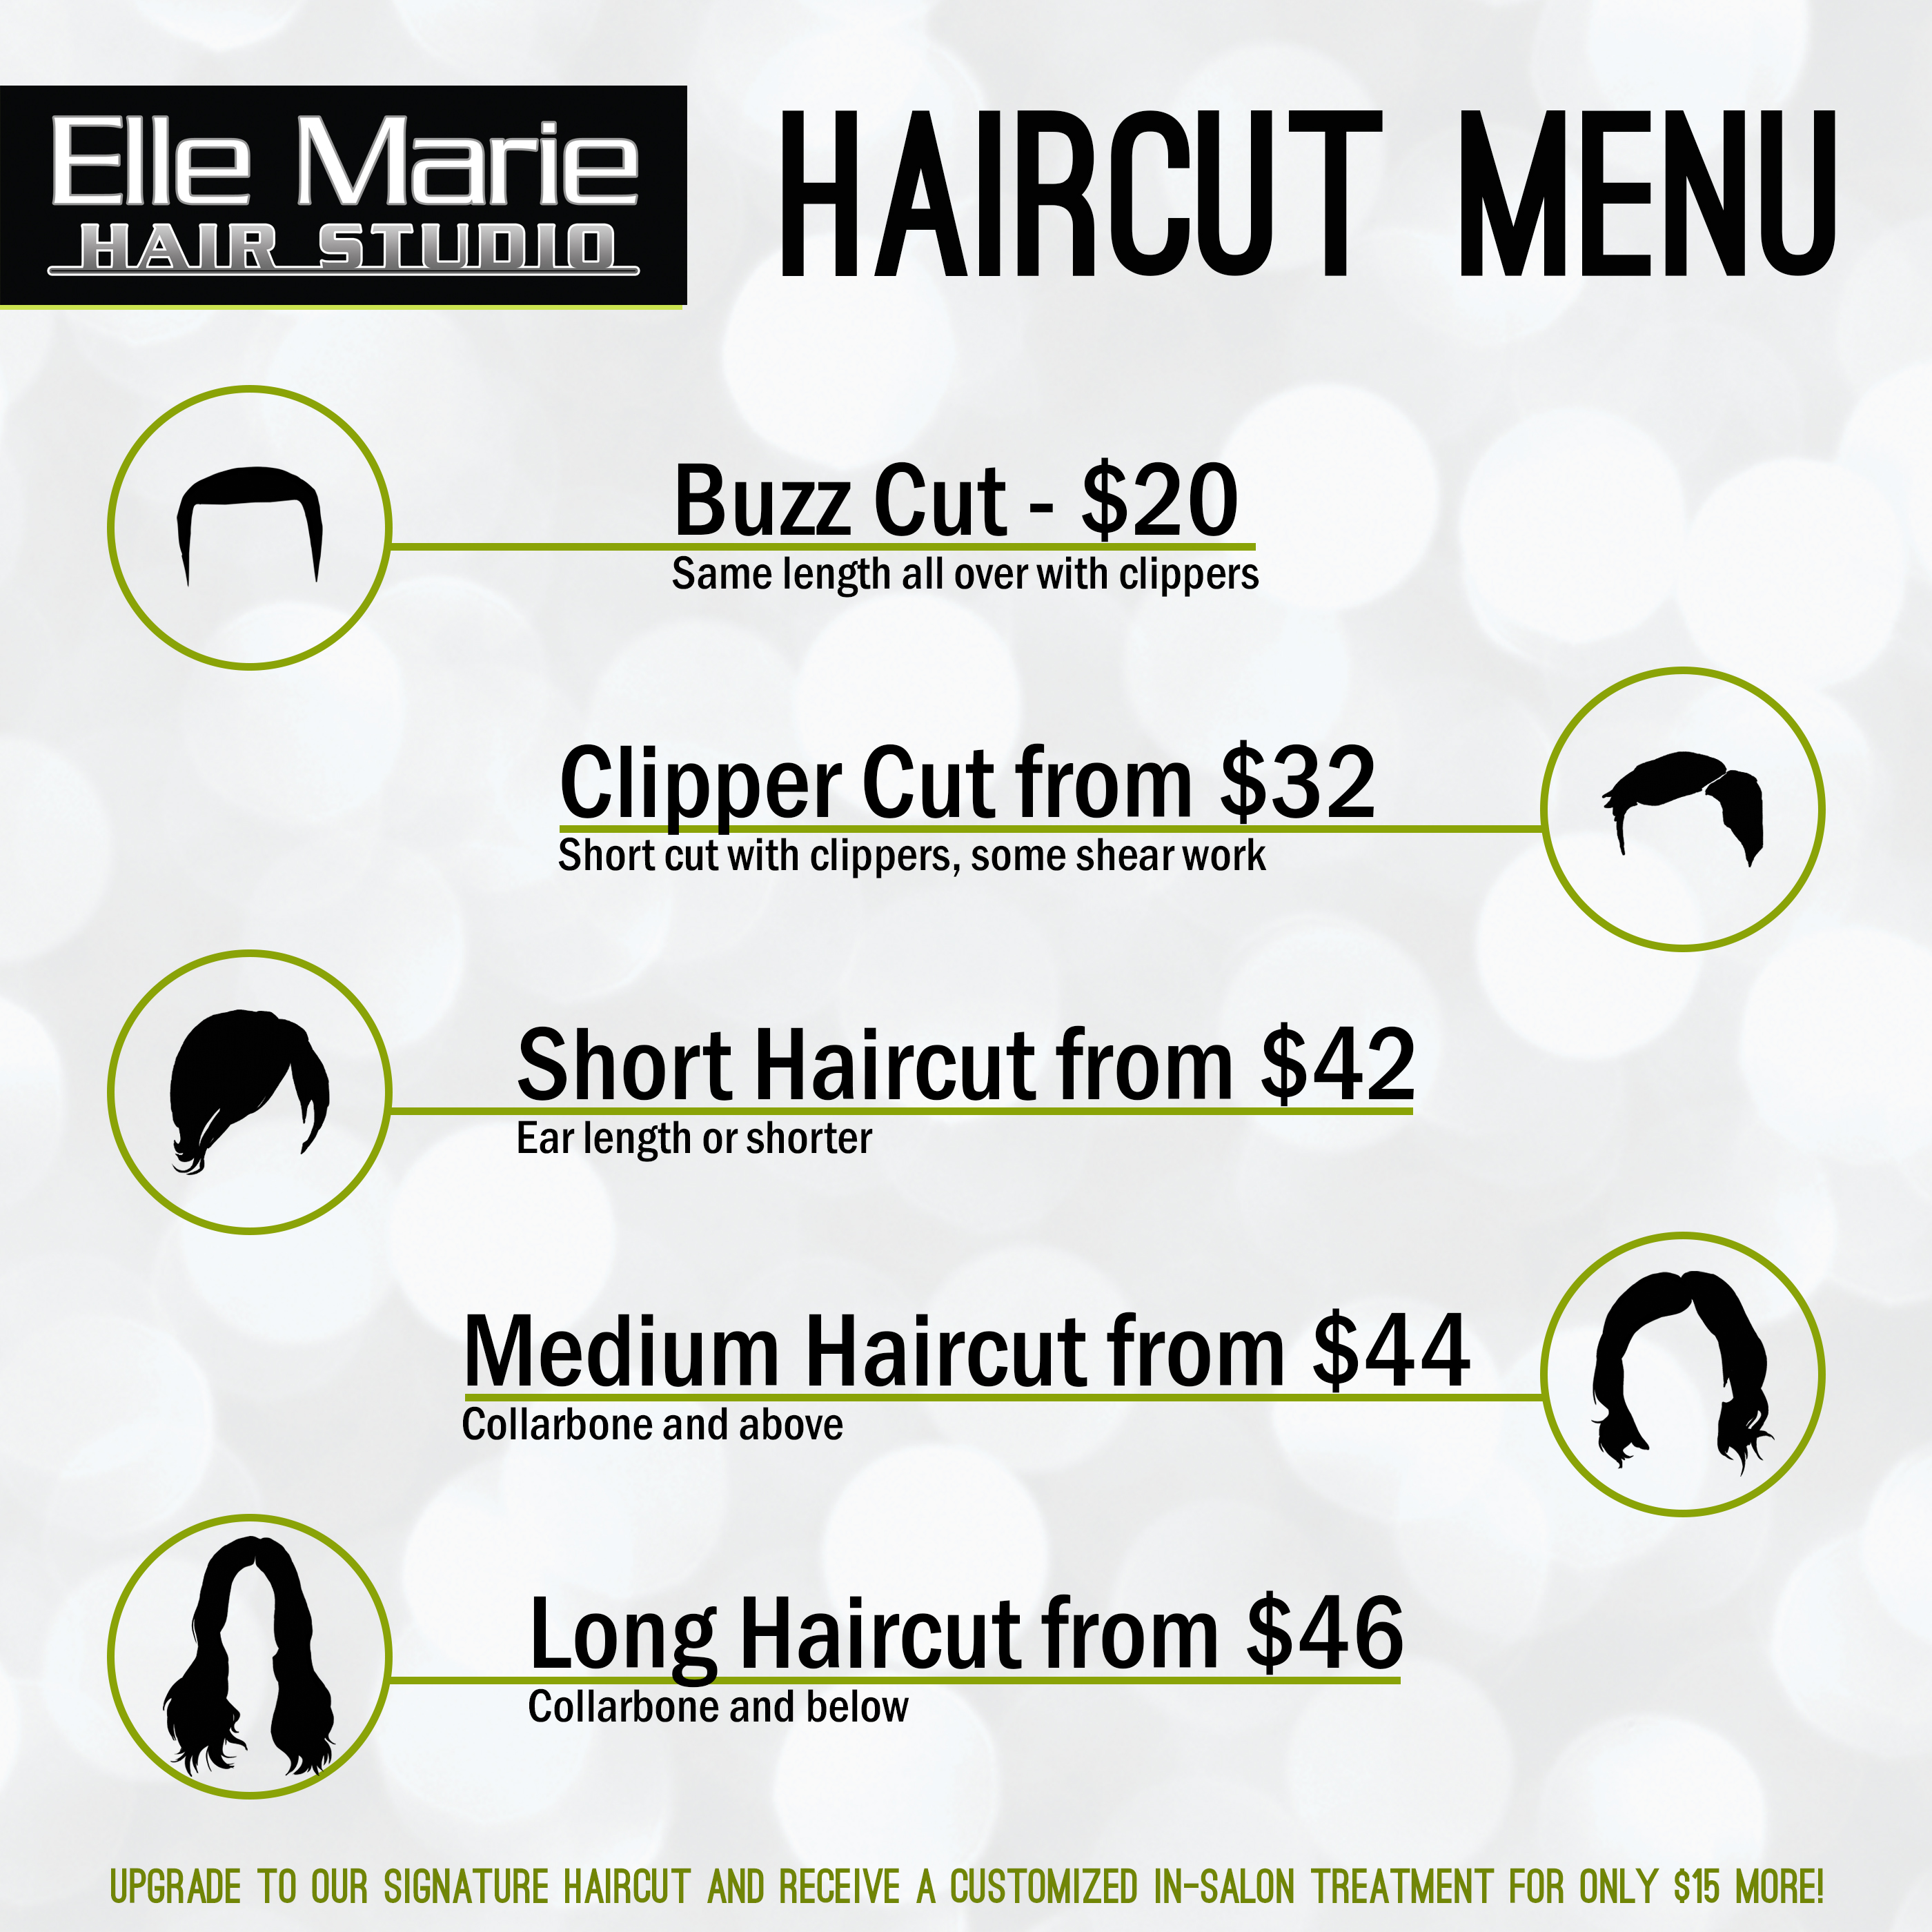 Haircut Length Guide